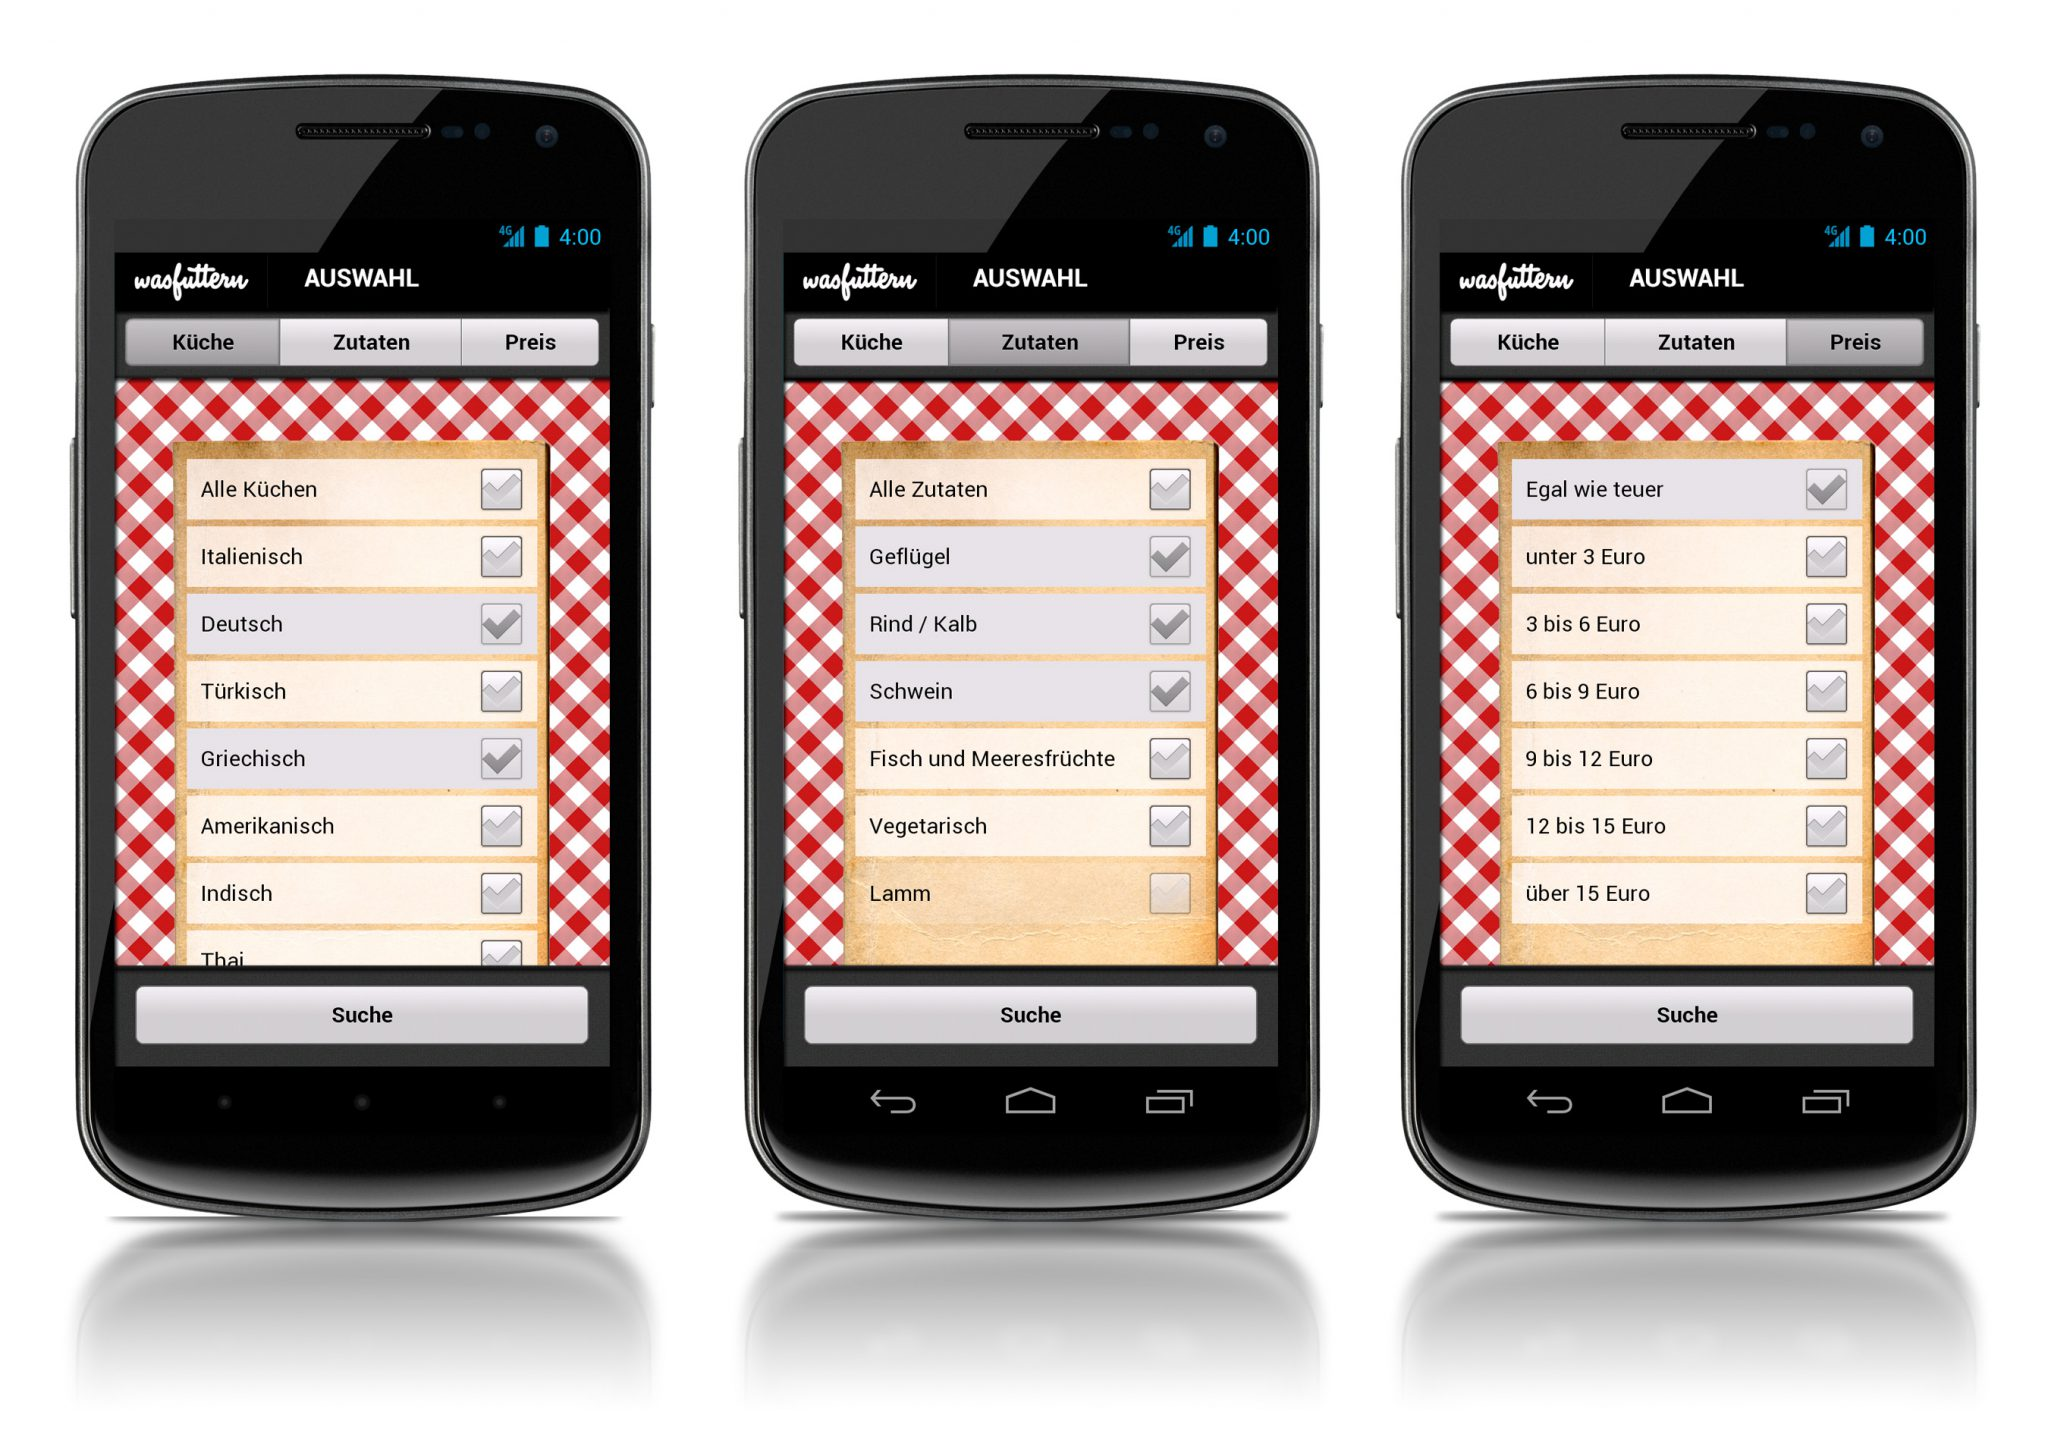 Was futtern on Android